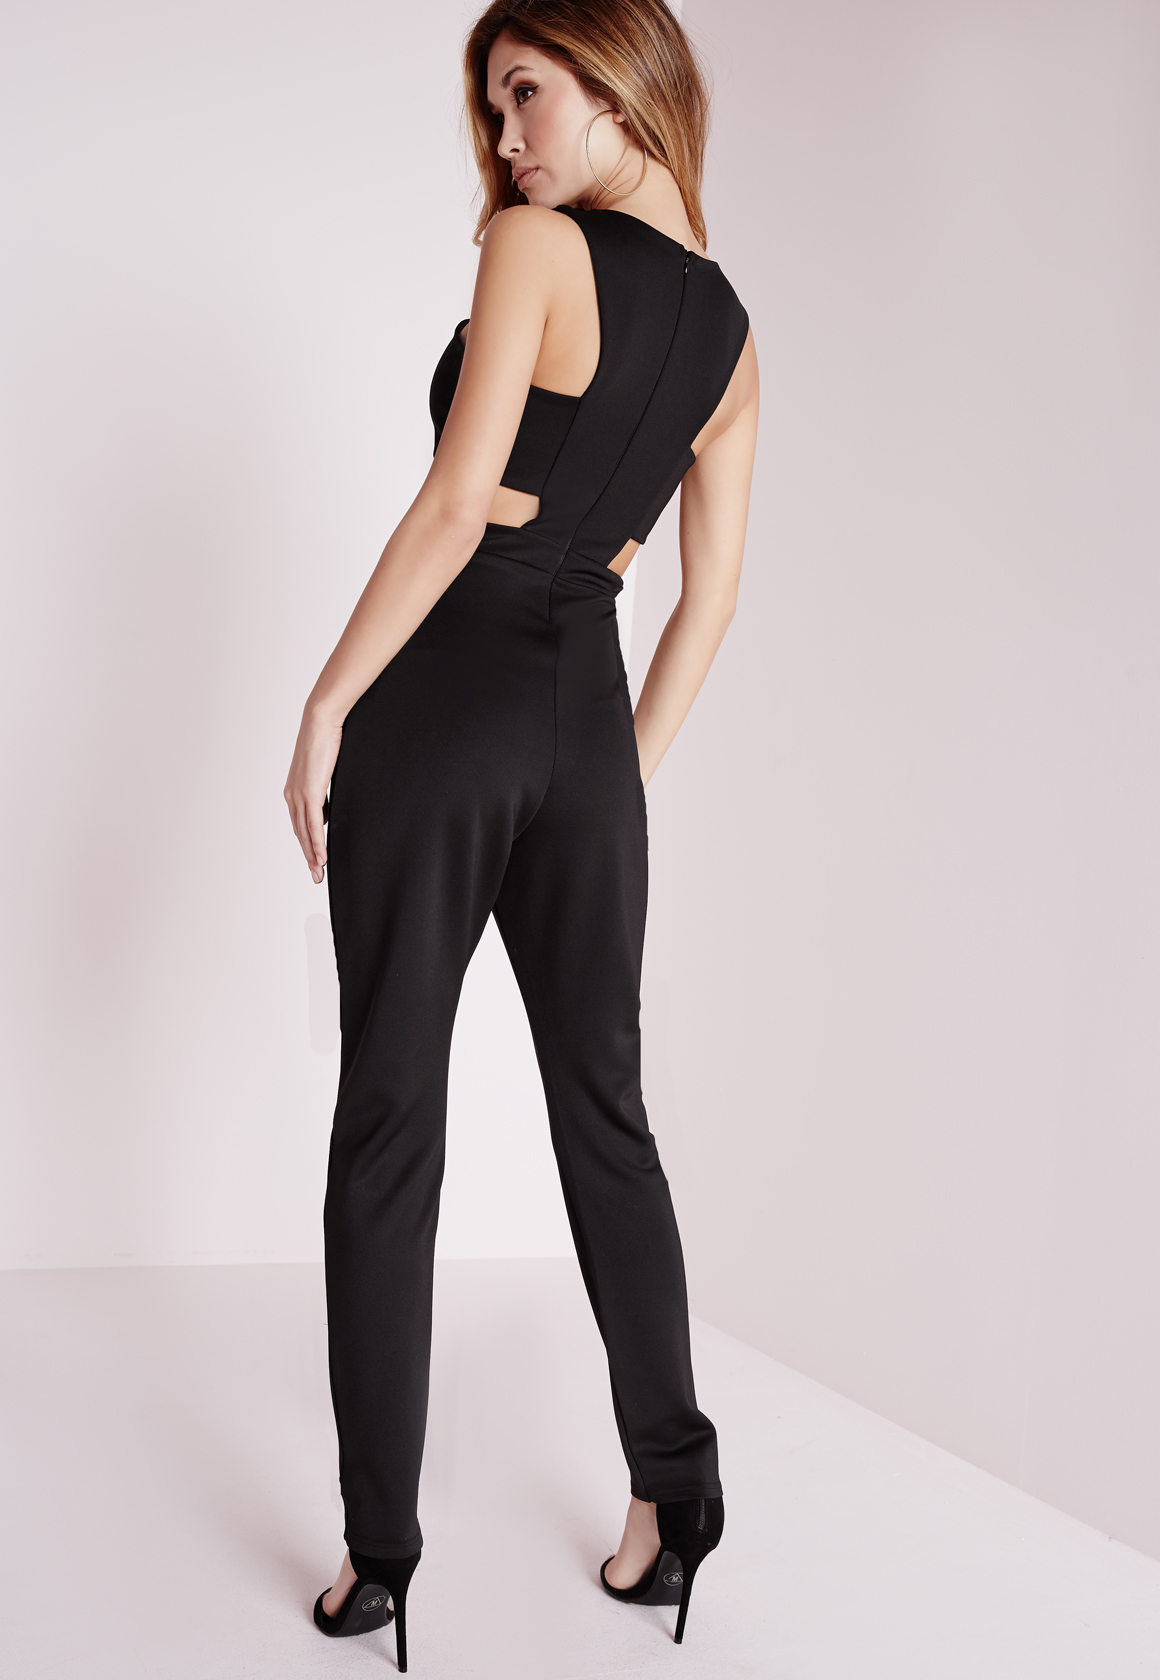 7545b728846 Missguided Racerneck Cut Out Waist Jumpsuit Black in Black .